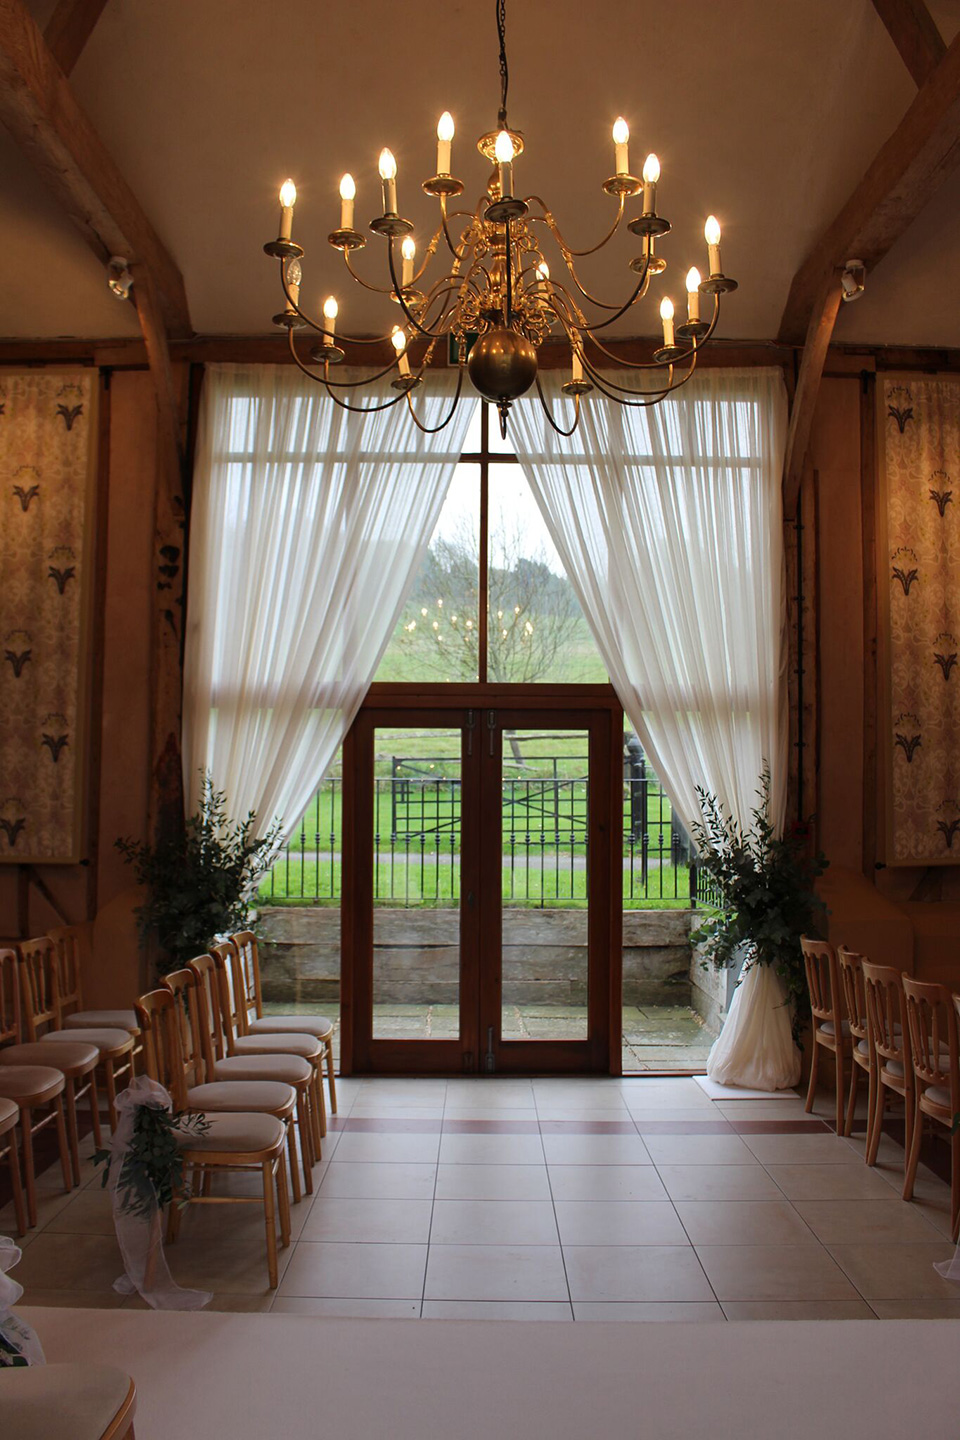 Inside or out, soft drapes bring an enchanting feel to this barn wedding venue. 8. Add a touch of vintage to your wedding decorations at Upwaltham Barns with